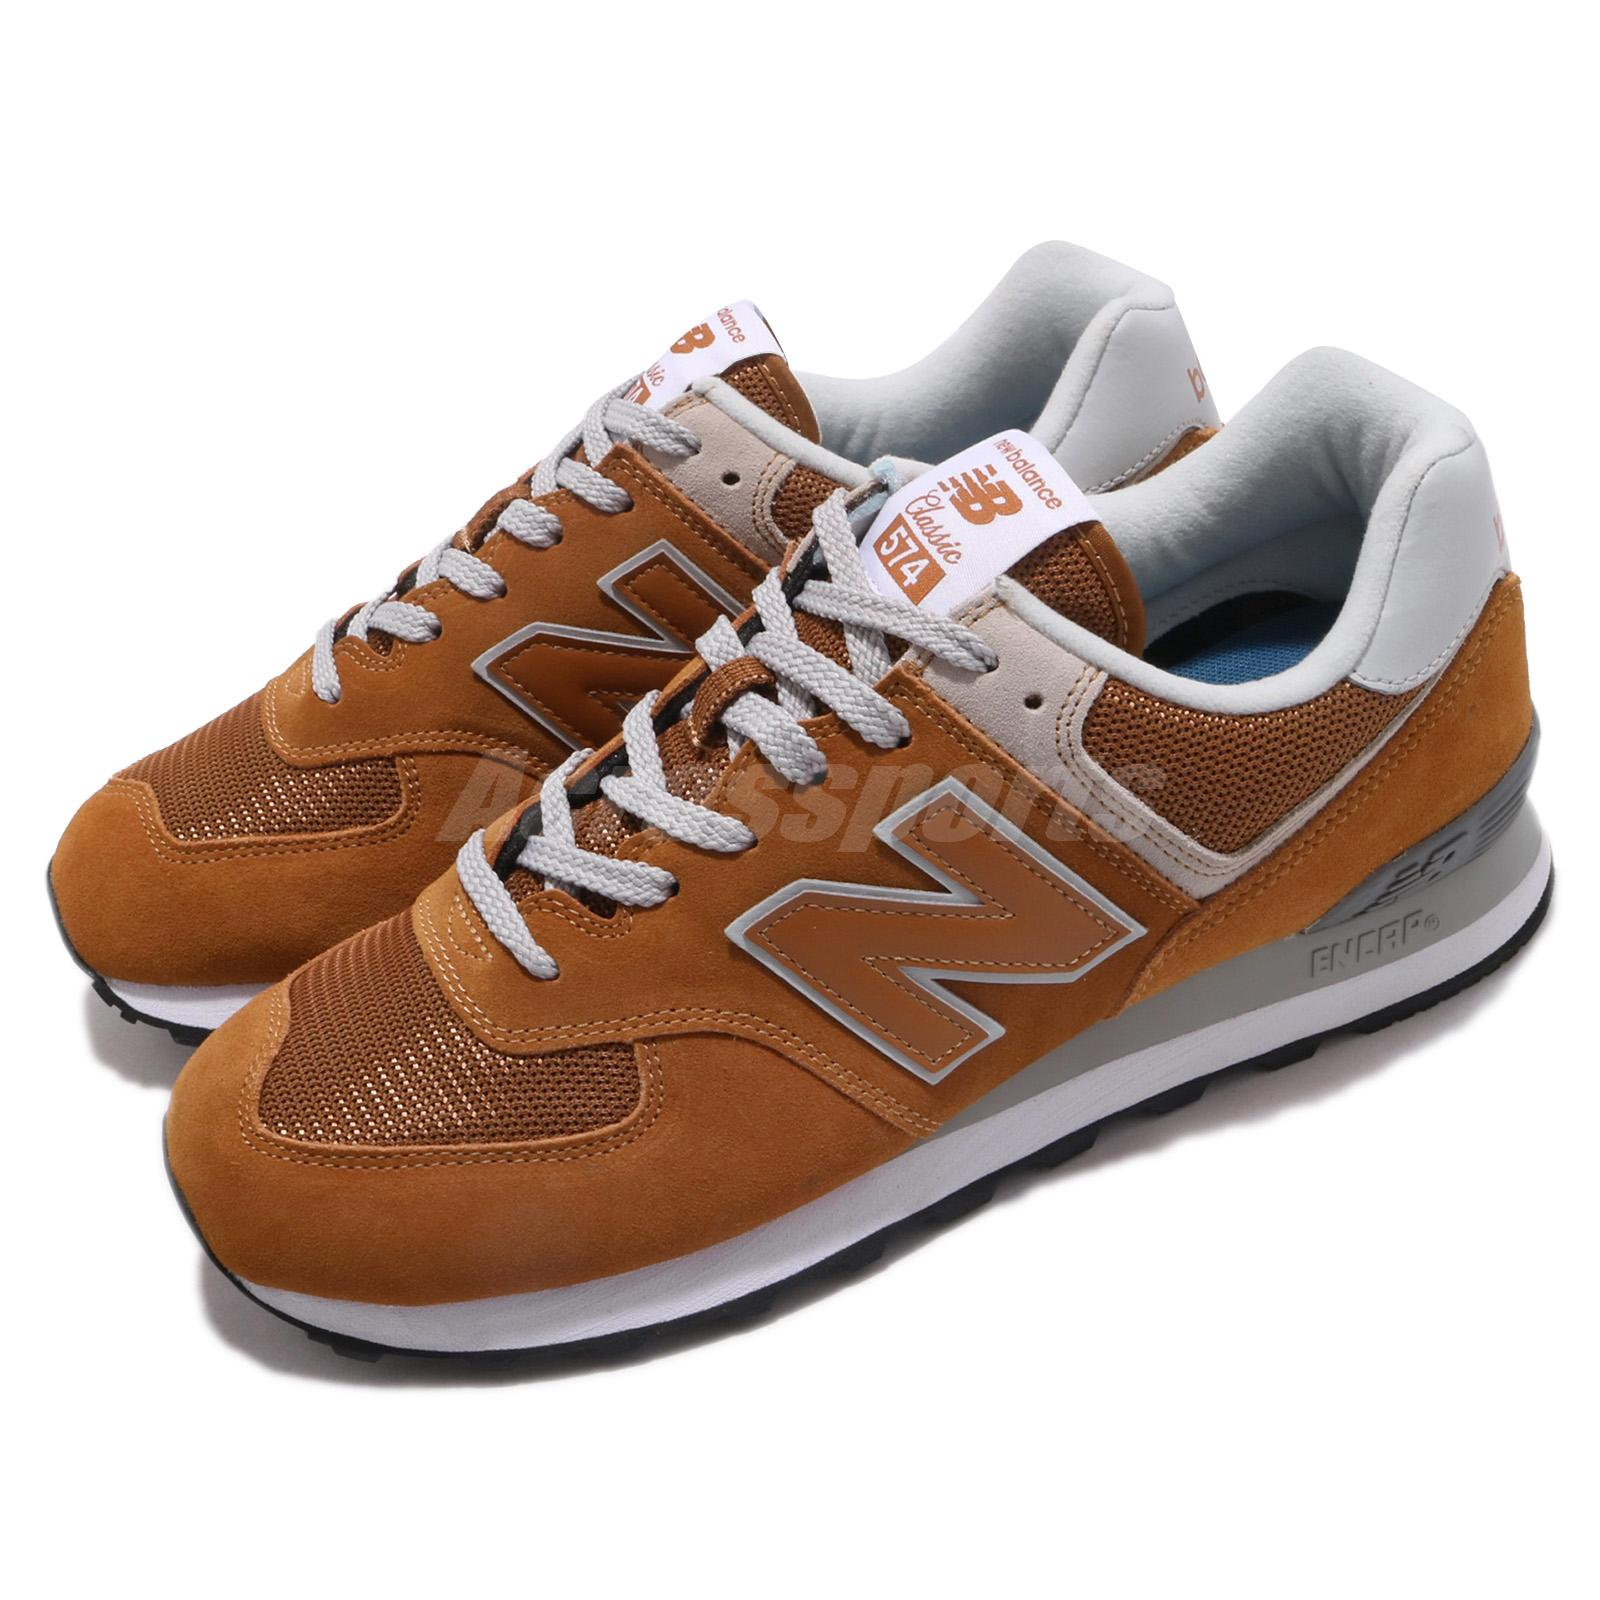 8d2a37329570b Details about New Balance ML574EPE D Brown Grey Men Running Casual Shoes  Sneakers ML574EPED